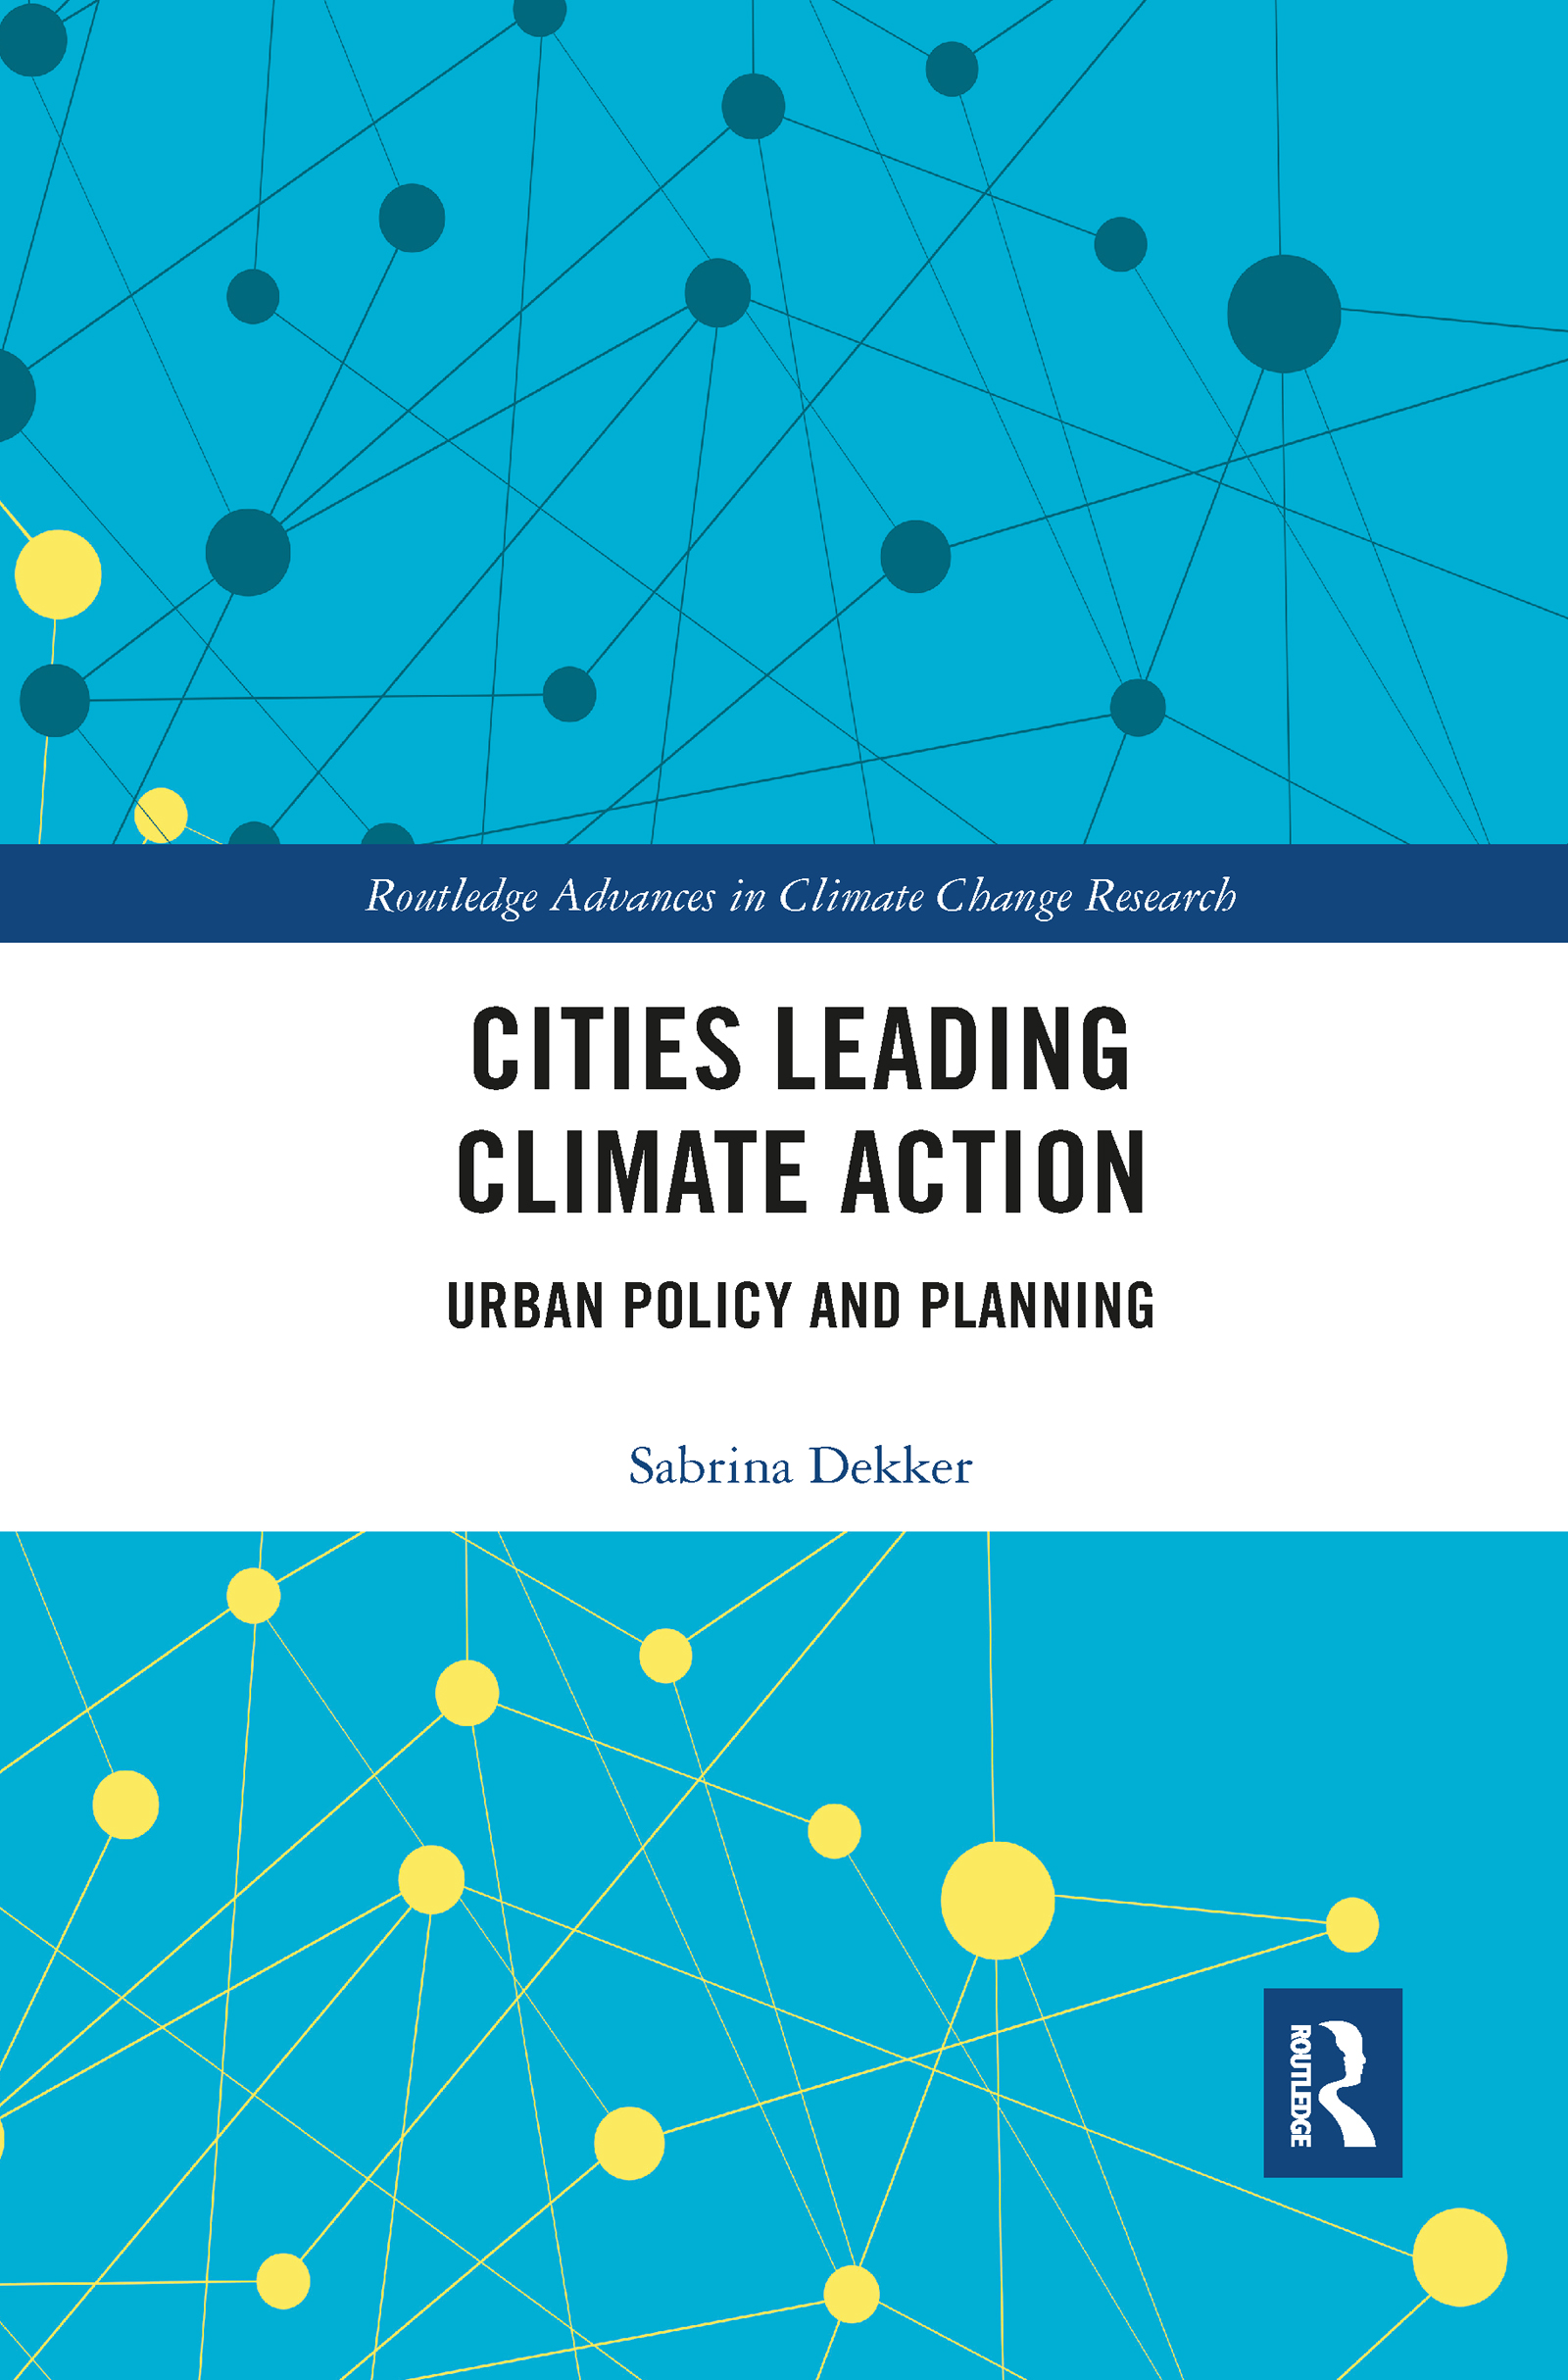 Cities Leading Climate Action